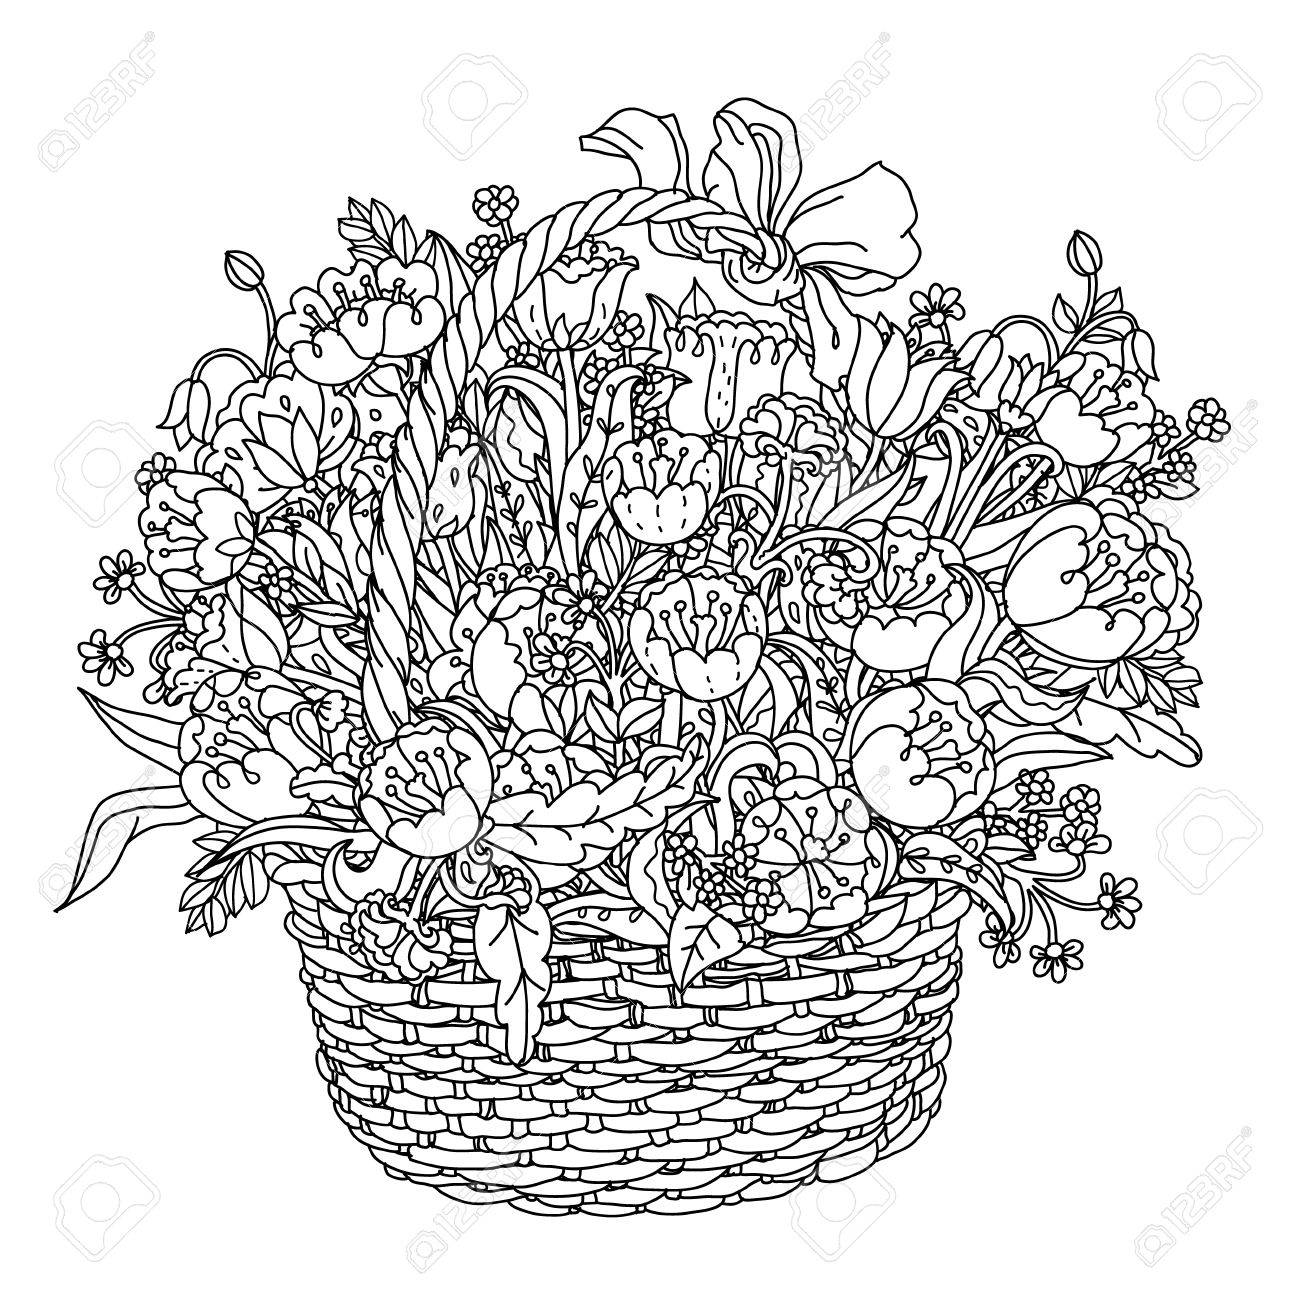 1300x1300 Hand Drawing Element. Black And White. Flowers In A Basket.